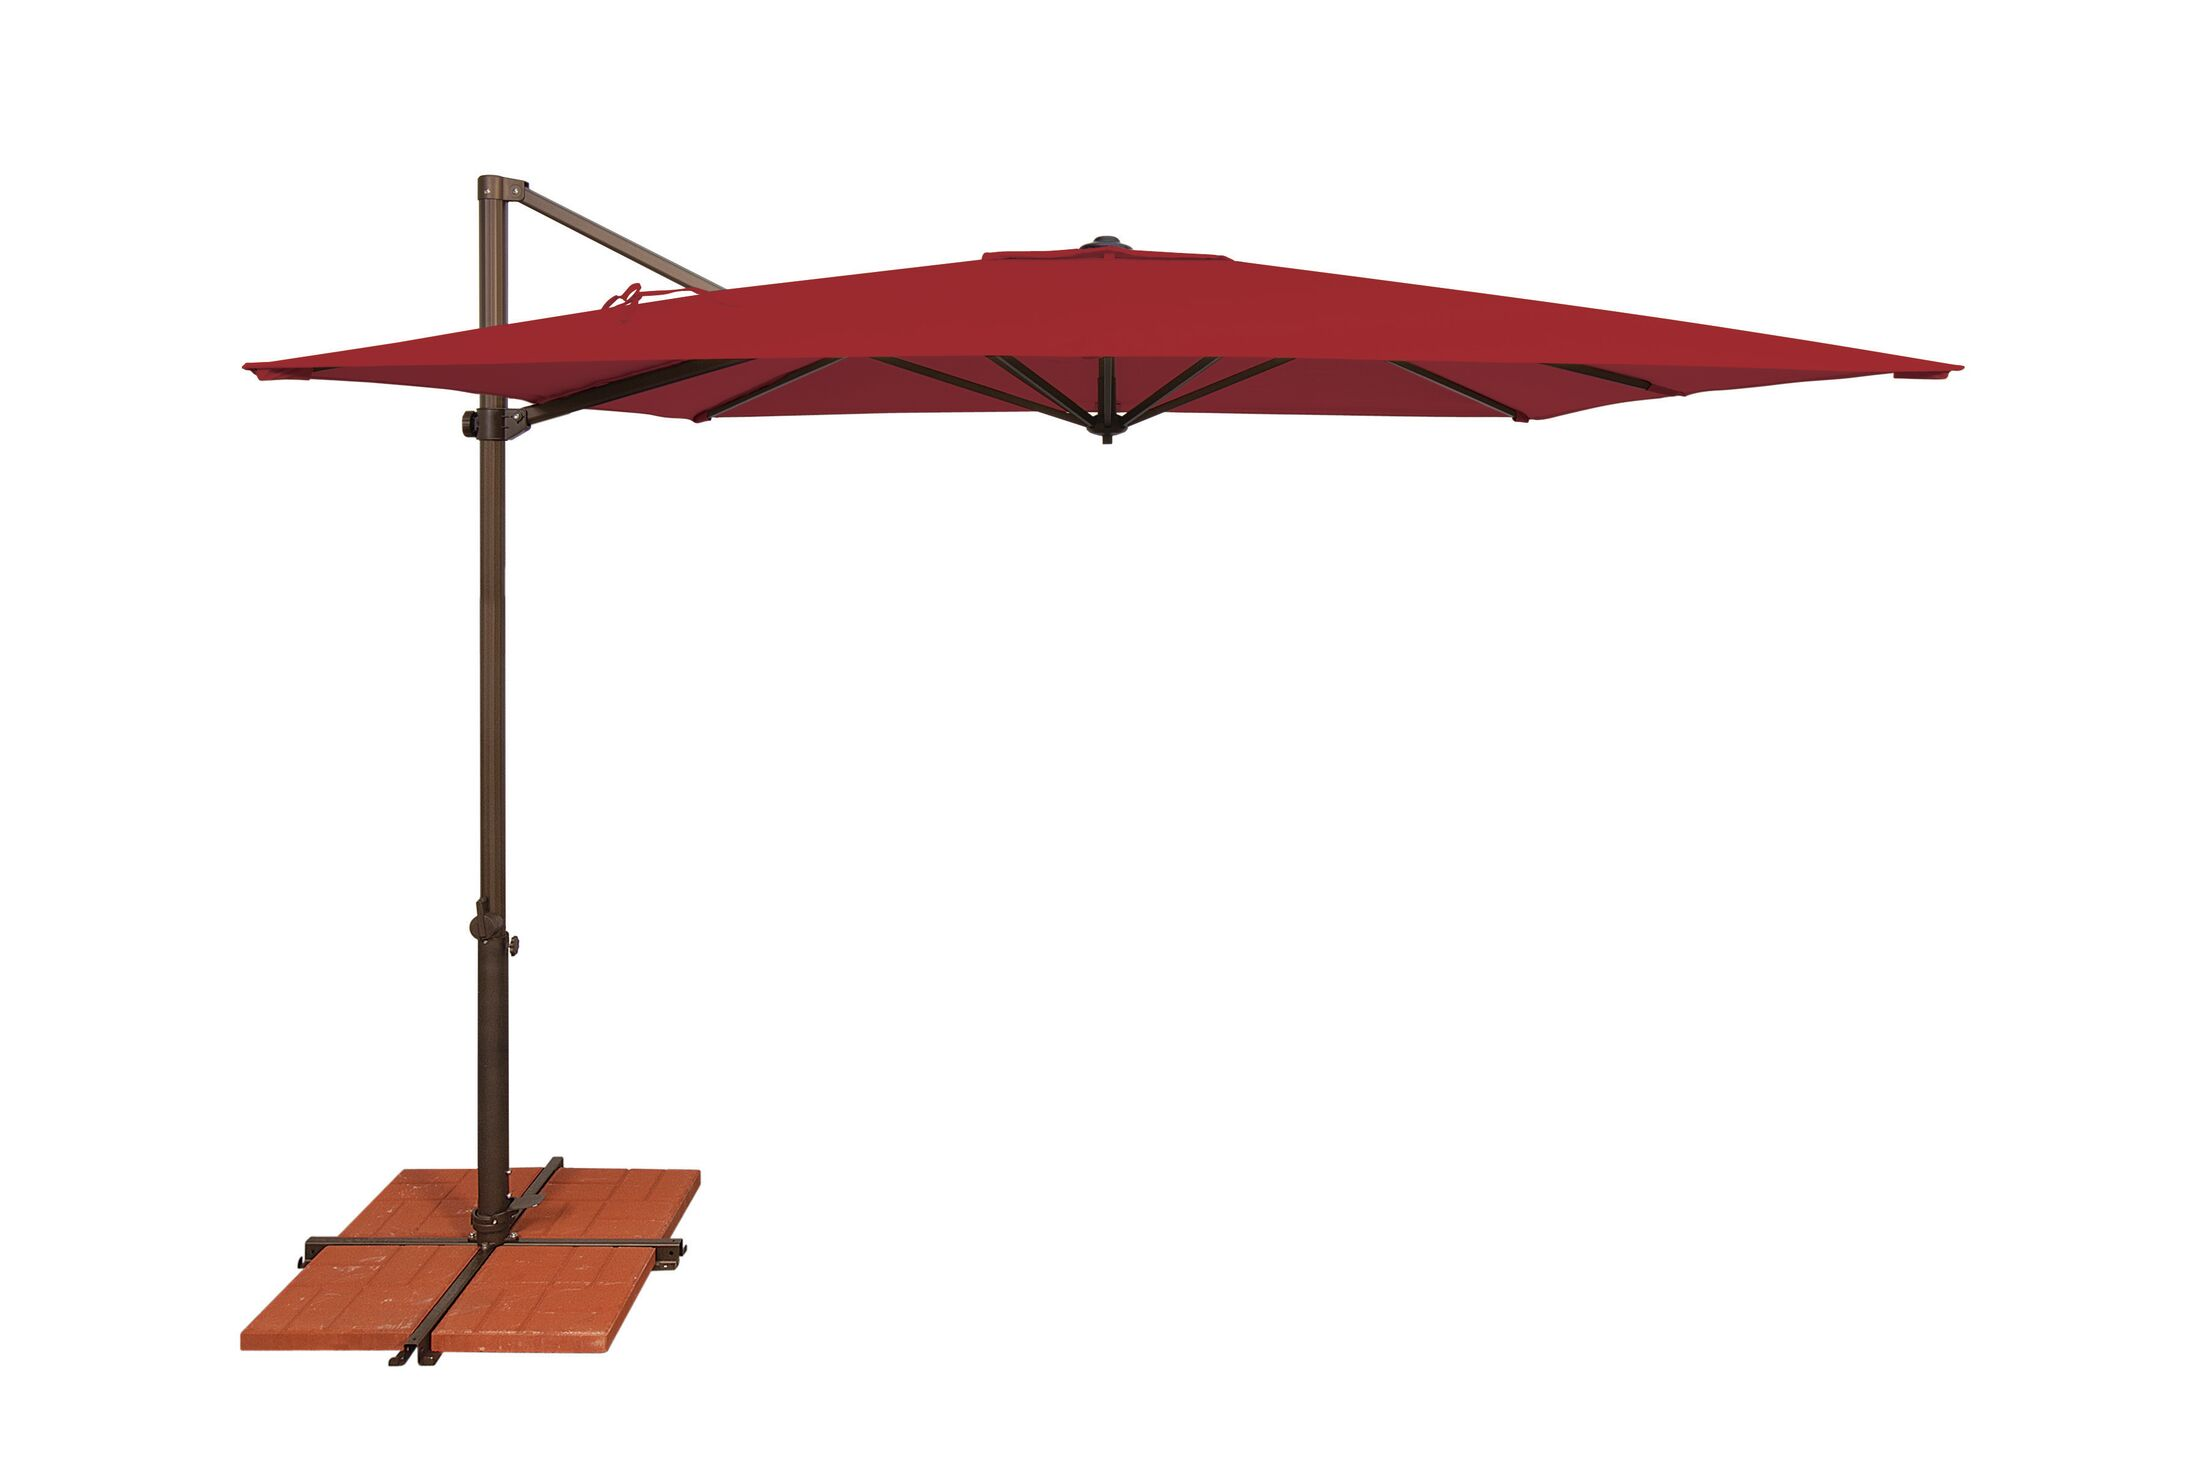 Skye 8.6' Square Cantilever Umbrella Fabric: Solefin / Really Red